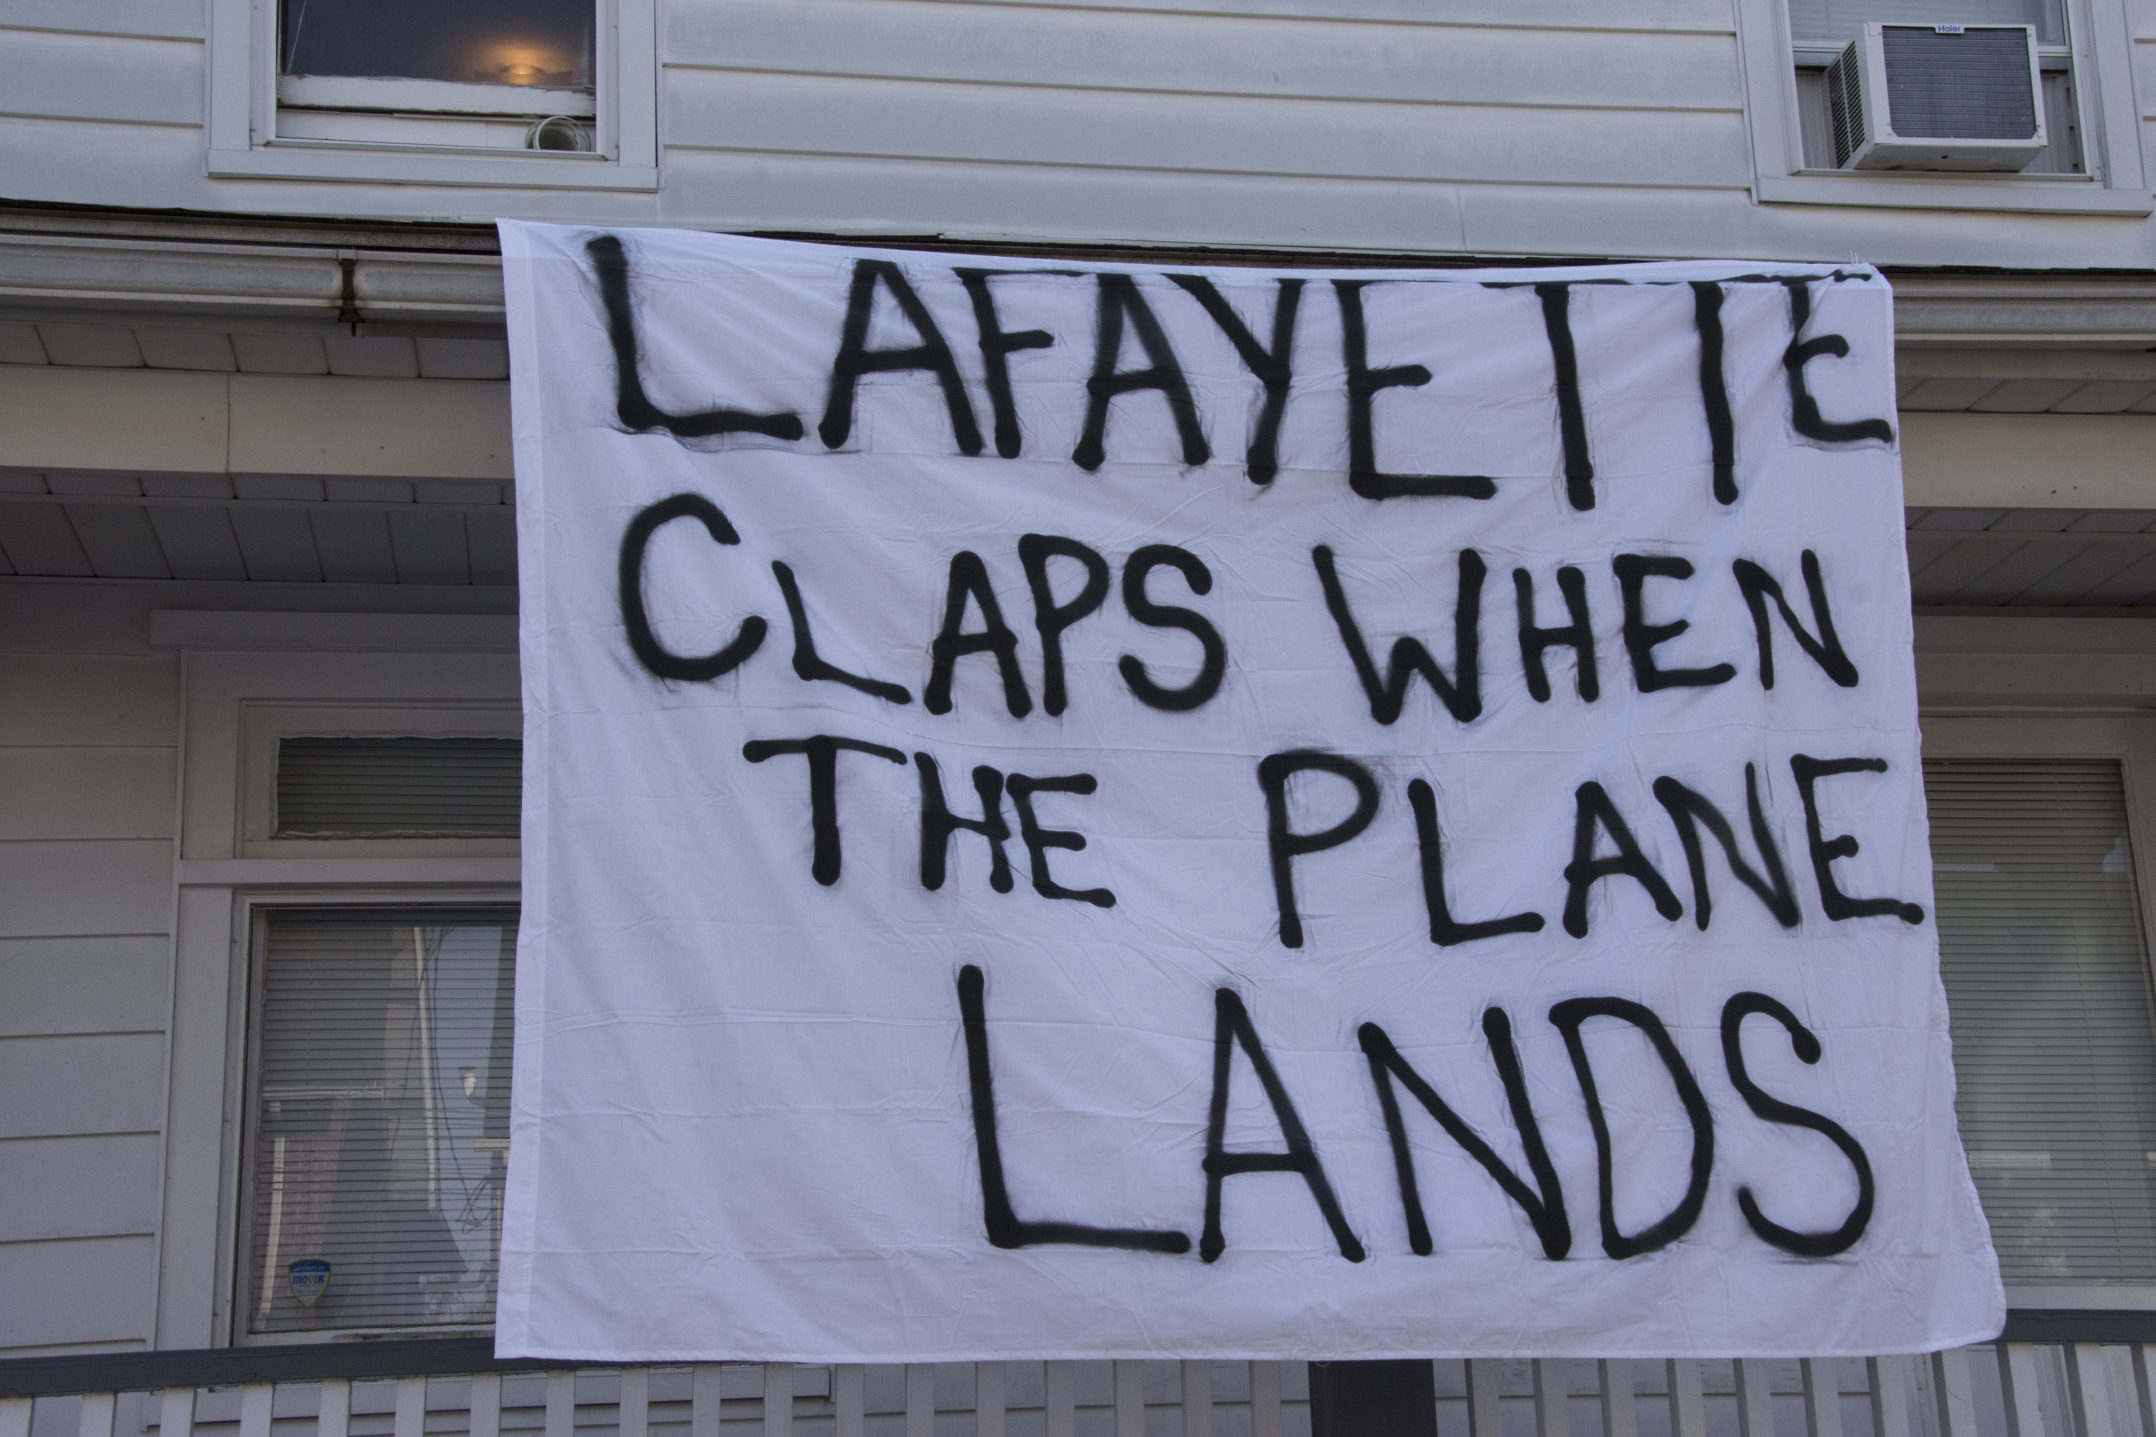 "A sign reading ""Lafayette claps when the plane lands"" hangs from a house on E. Fifth Street on Wednesday, Nov. 15, 2017. Many Lehigh students create banners that make fun of Lafayette students. (Annie Henry/B&W Staff)"